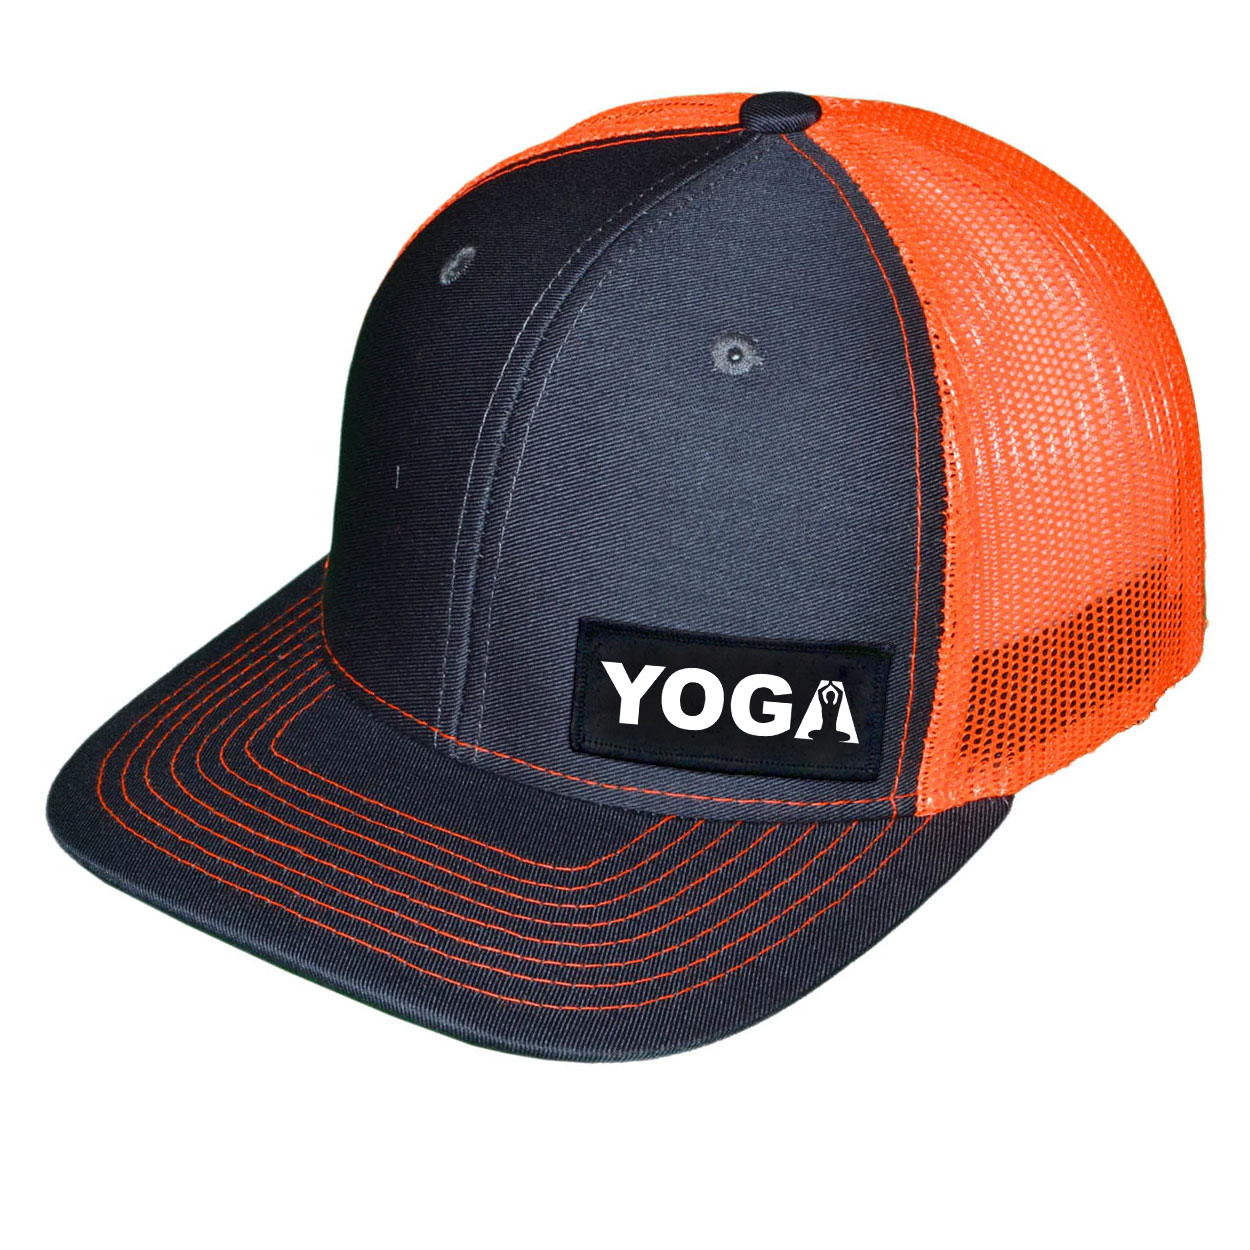 Yoga Meditation Logo Night Out Woven Patch Snapback Trucker Hat Dark Gray/Orange (White Logo)